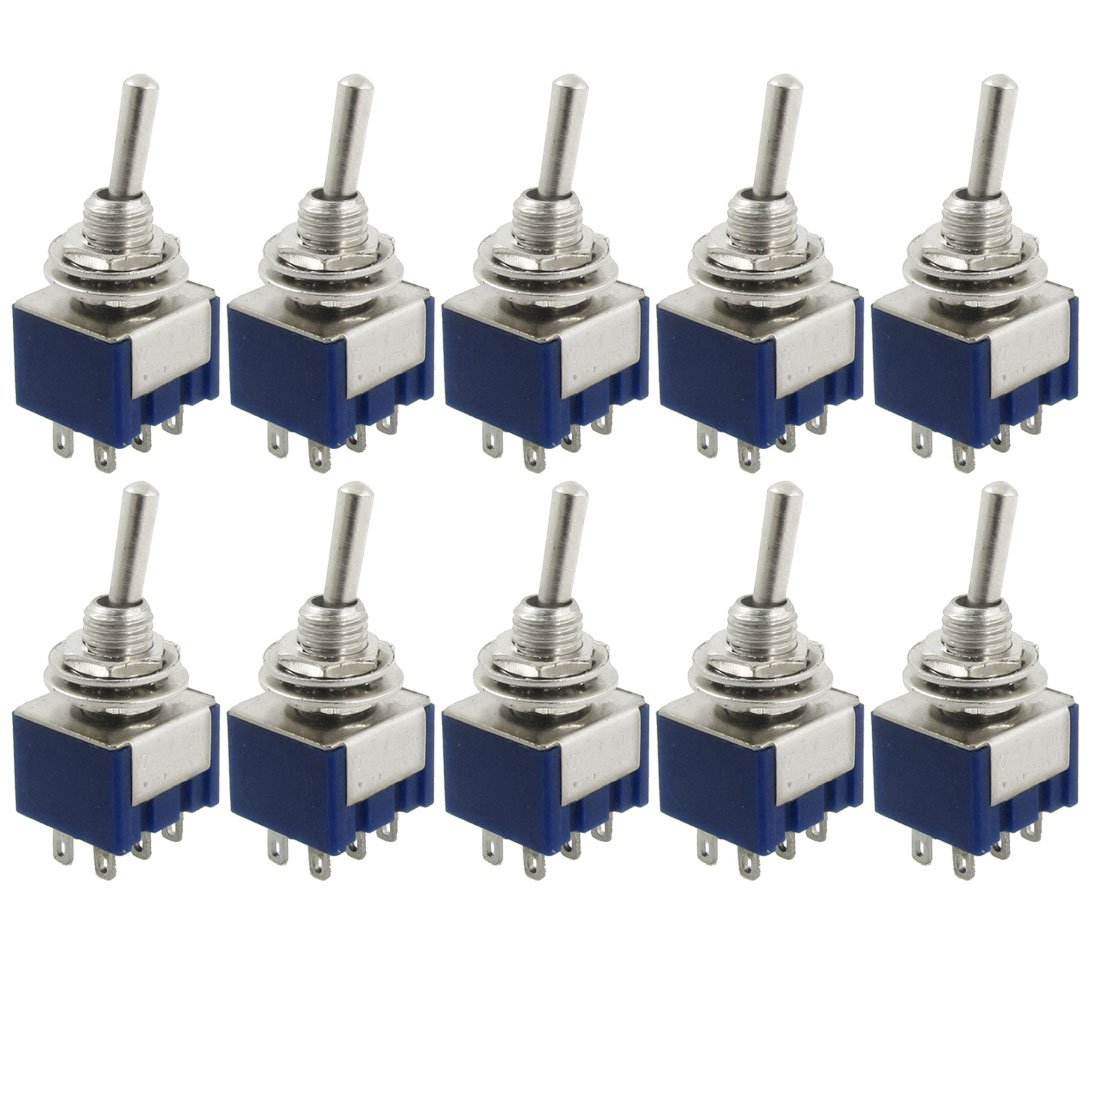 10 Pcs AC 125V 6A Amps ON/ON 2 Position DPDT Toggle Switch